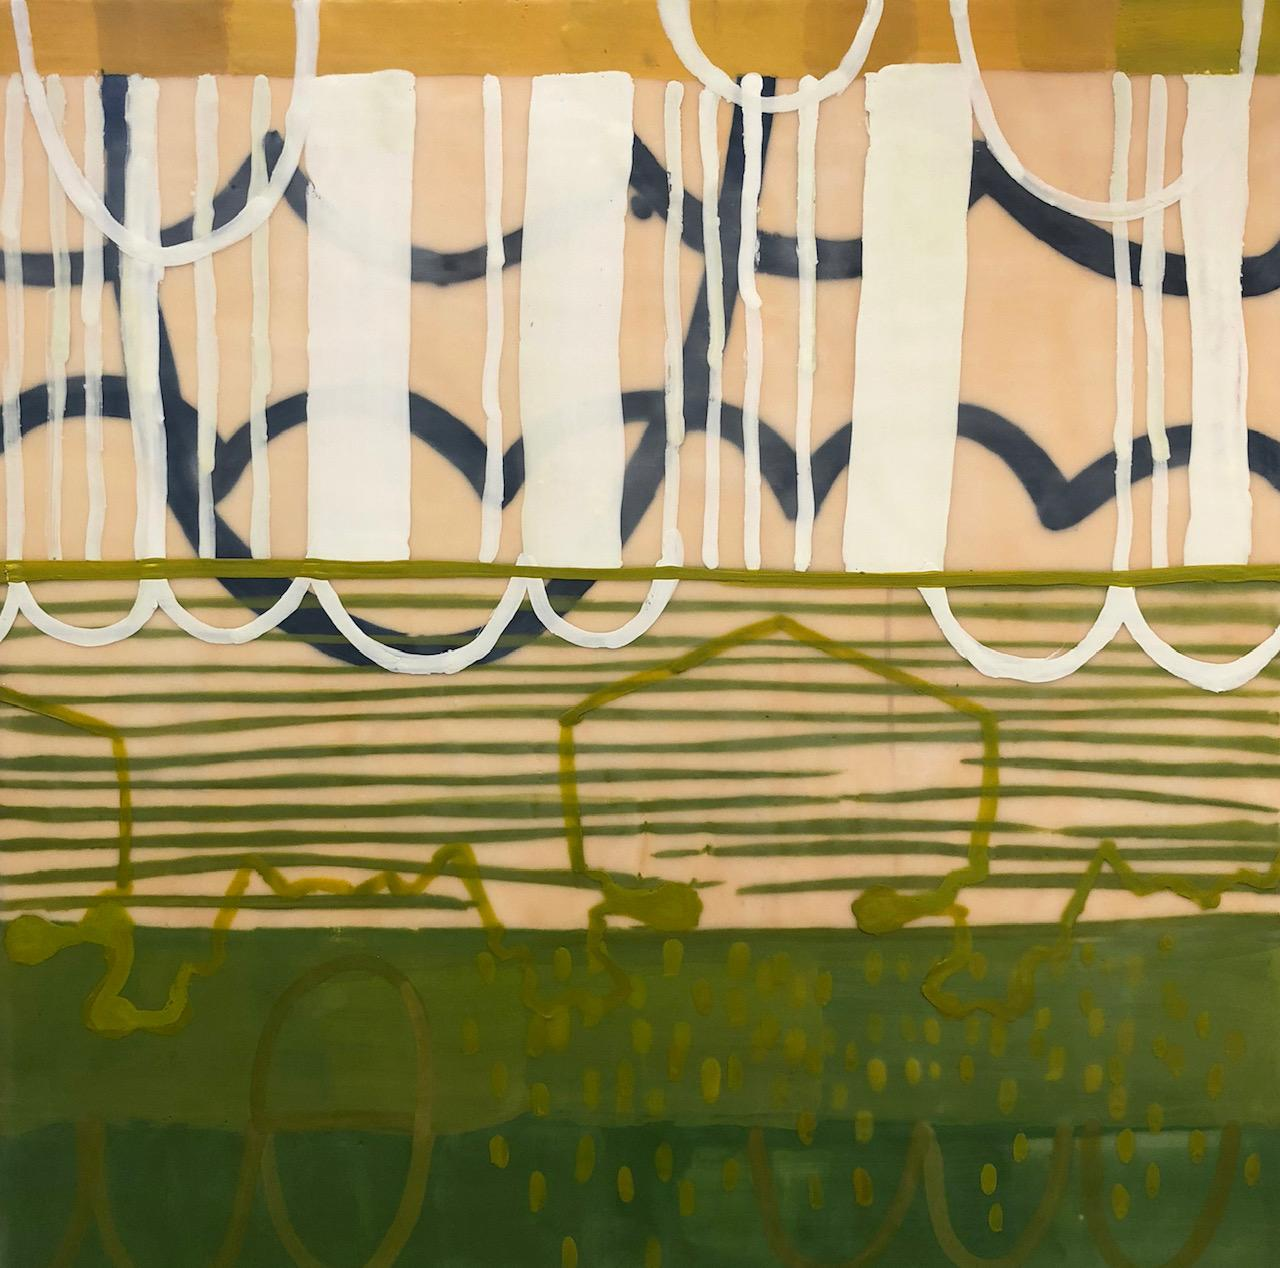 Lacuna 7, yellow and green abstract encaustic painting on panel, stripes